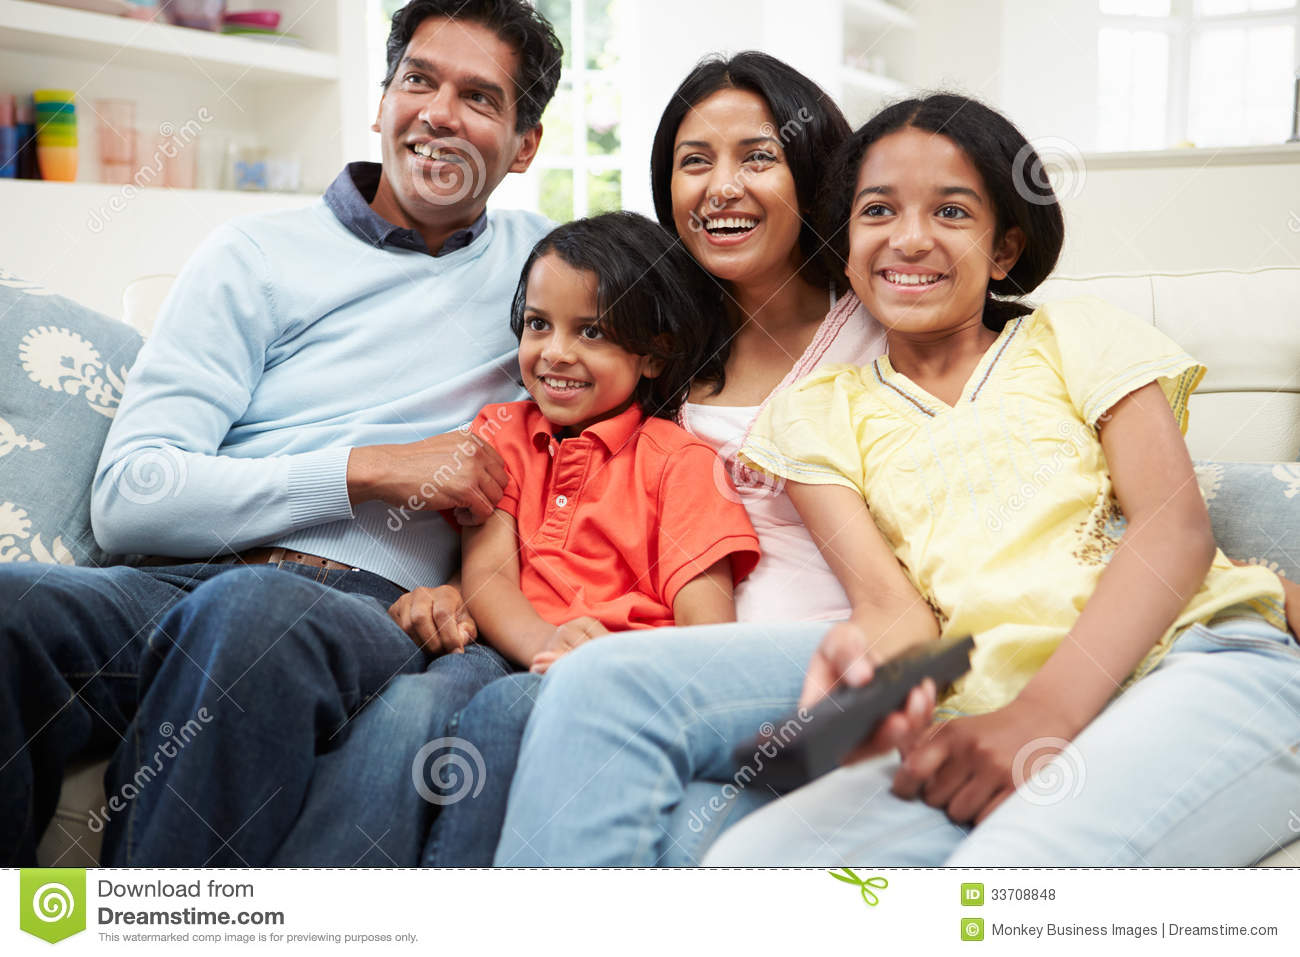 Indian Family Sitting On Sofa Watching TV Together Royalty  : indian family sitting sofa watching tv together looking away camera smiling 33708848 from www.dreamstime.com size 1300 x 957 jpeg 141kB